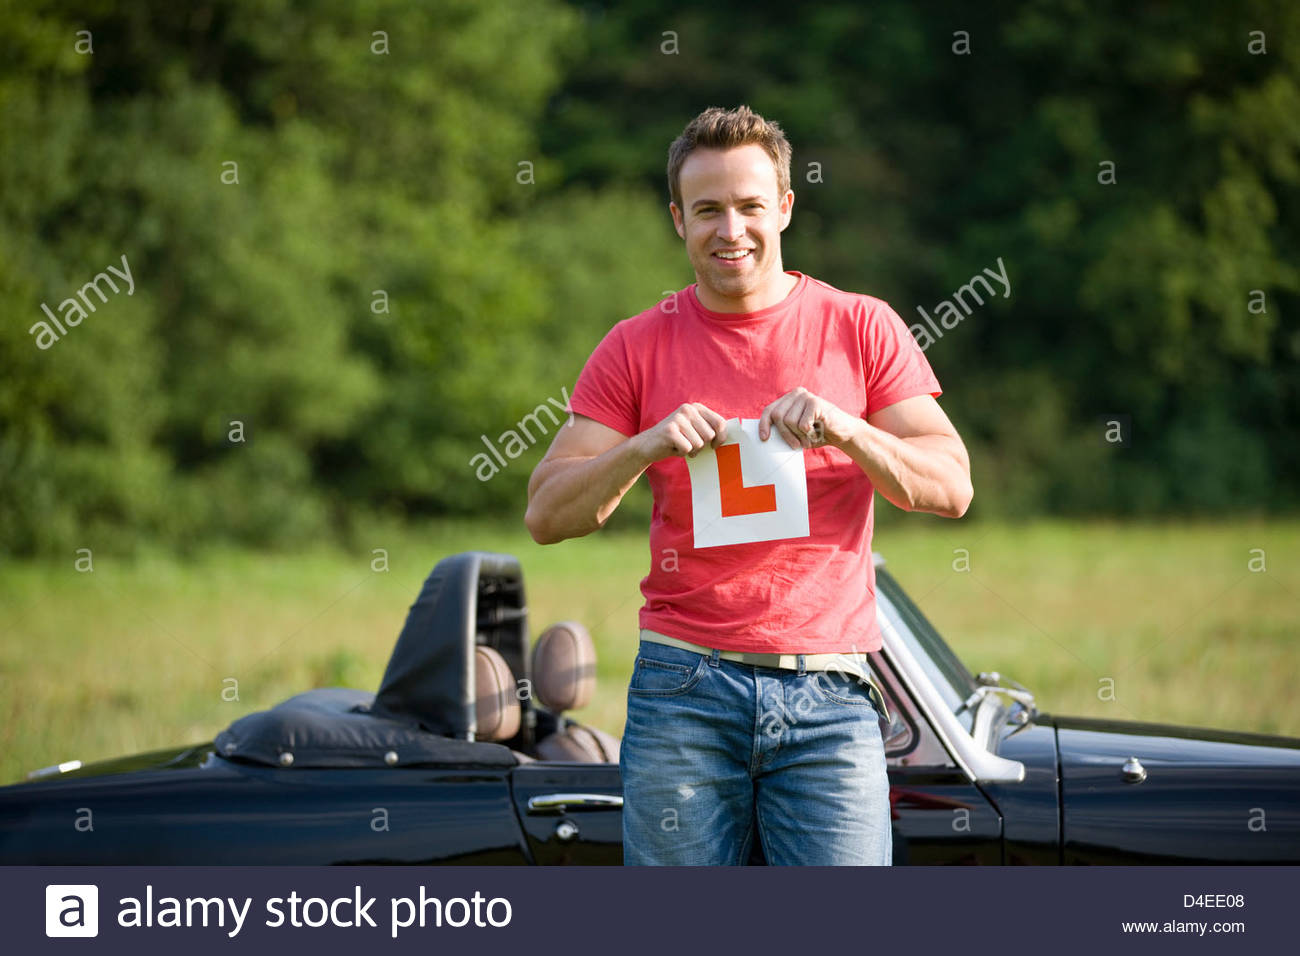 A young man standing in front of a black sports car, tearing up an L Plate - Stock Image